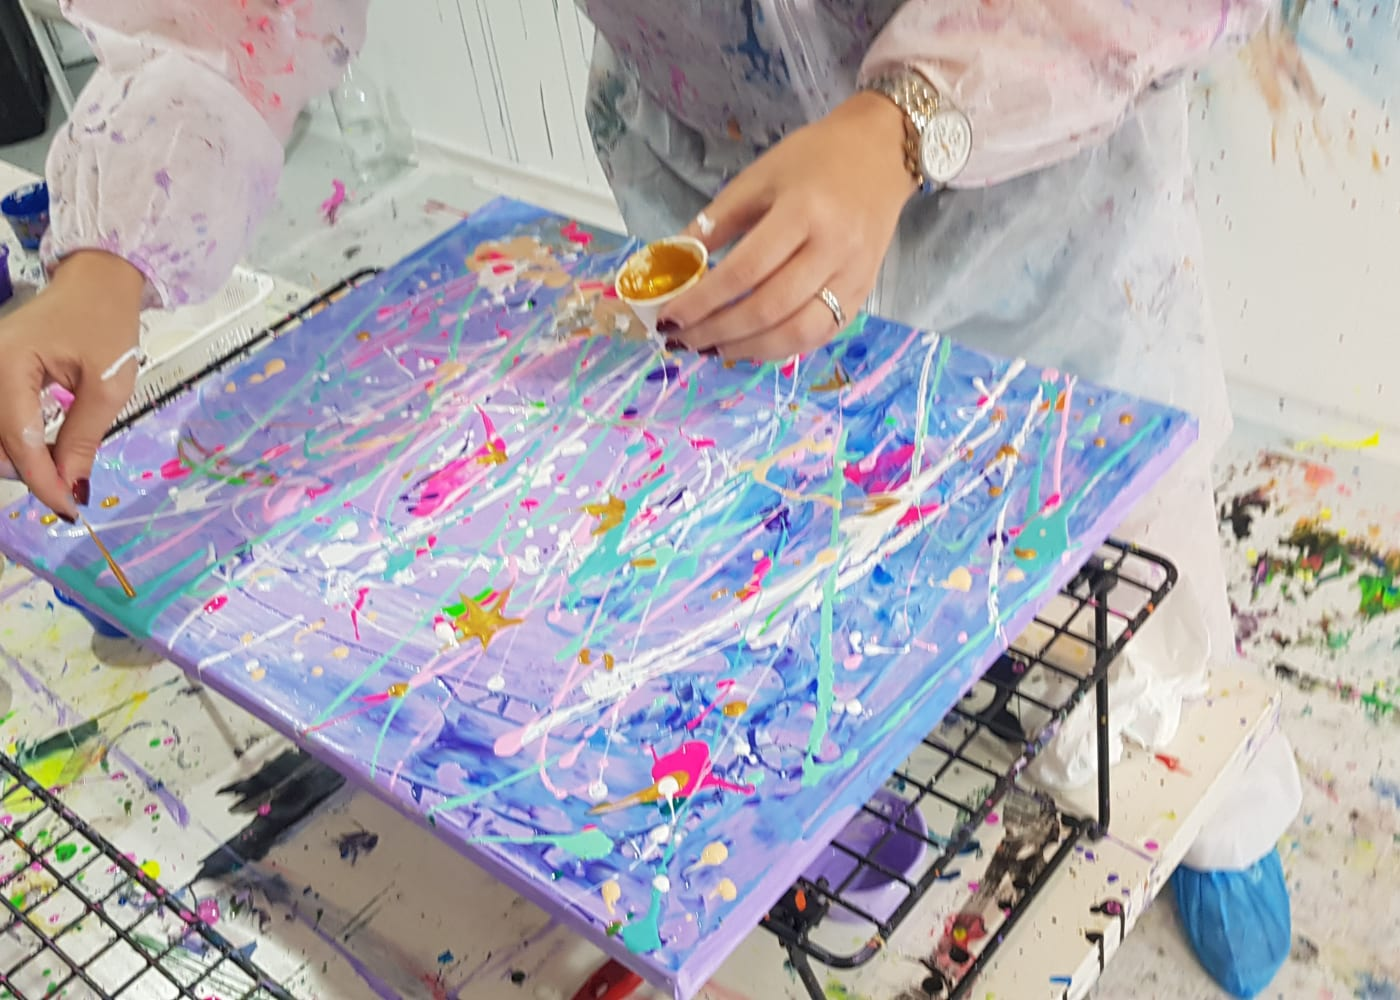 Splat Paint House Messy Family Fun With Paint Honeykids Asia